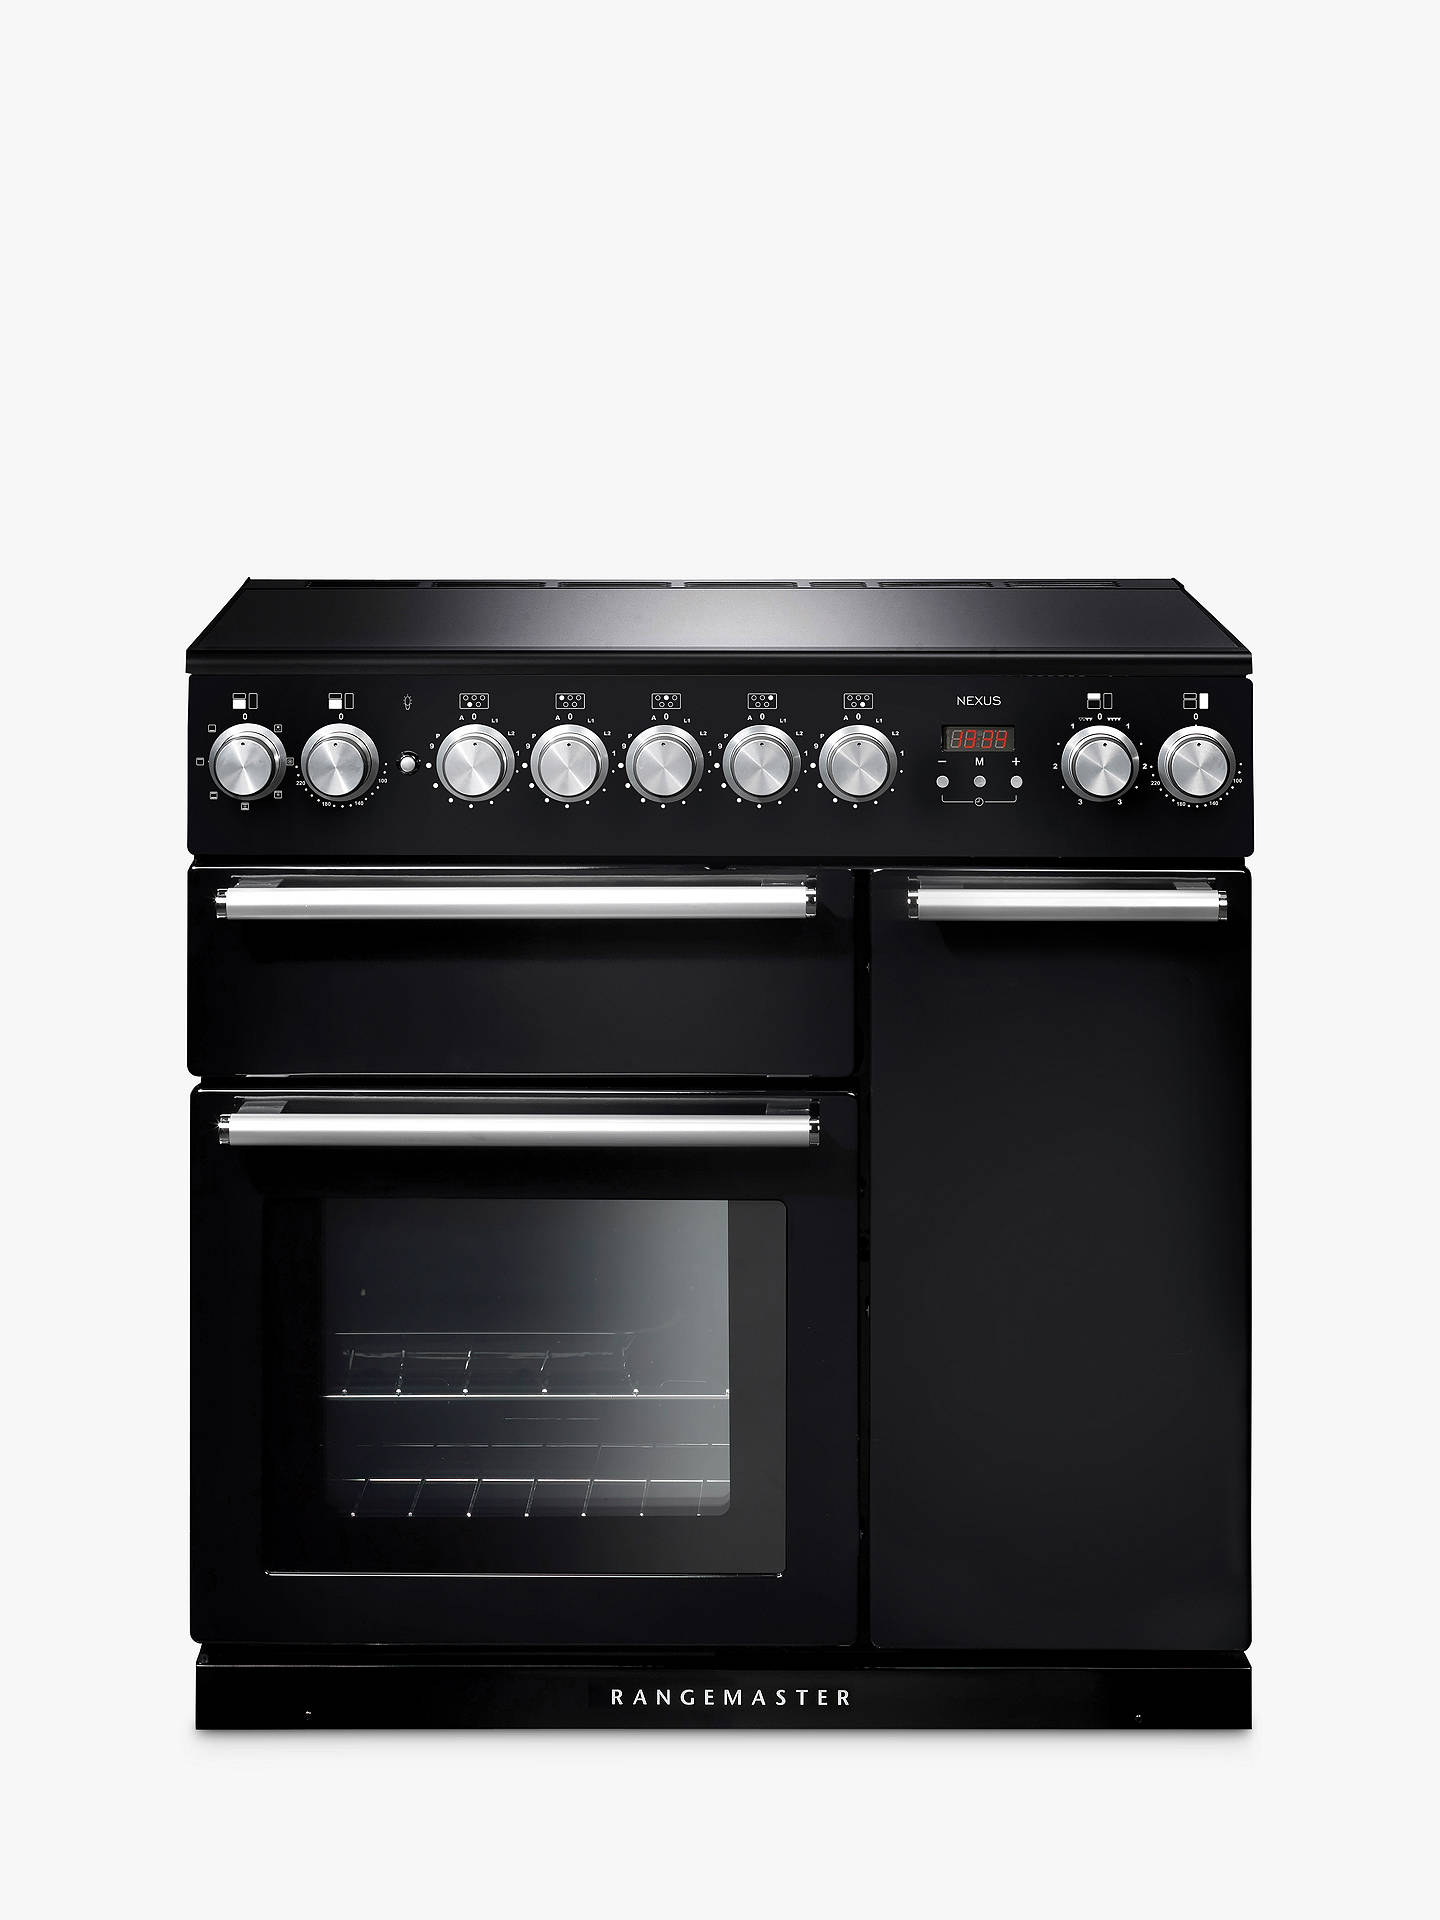 BuyRangemaster Nexus 90 Induction Range Cooker, Gloss Black/Chrome Trim Online at johnlewis.com